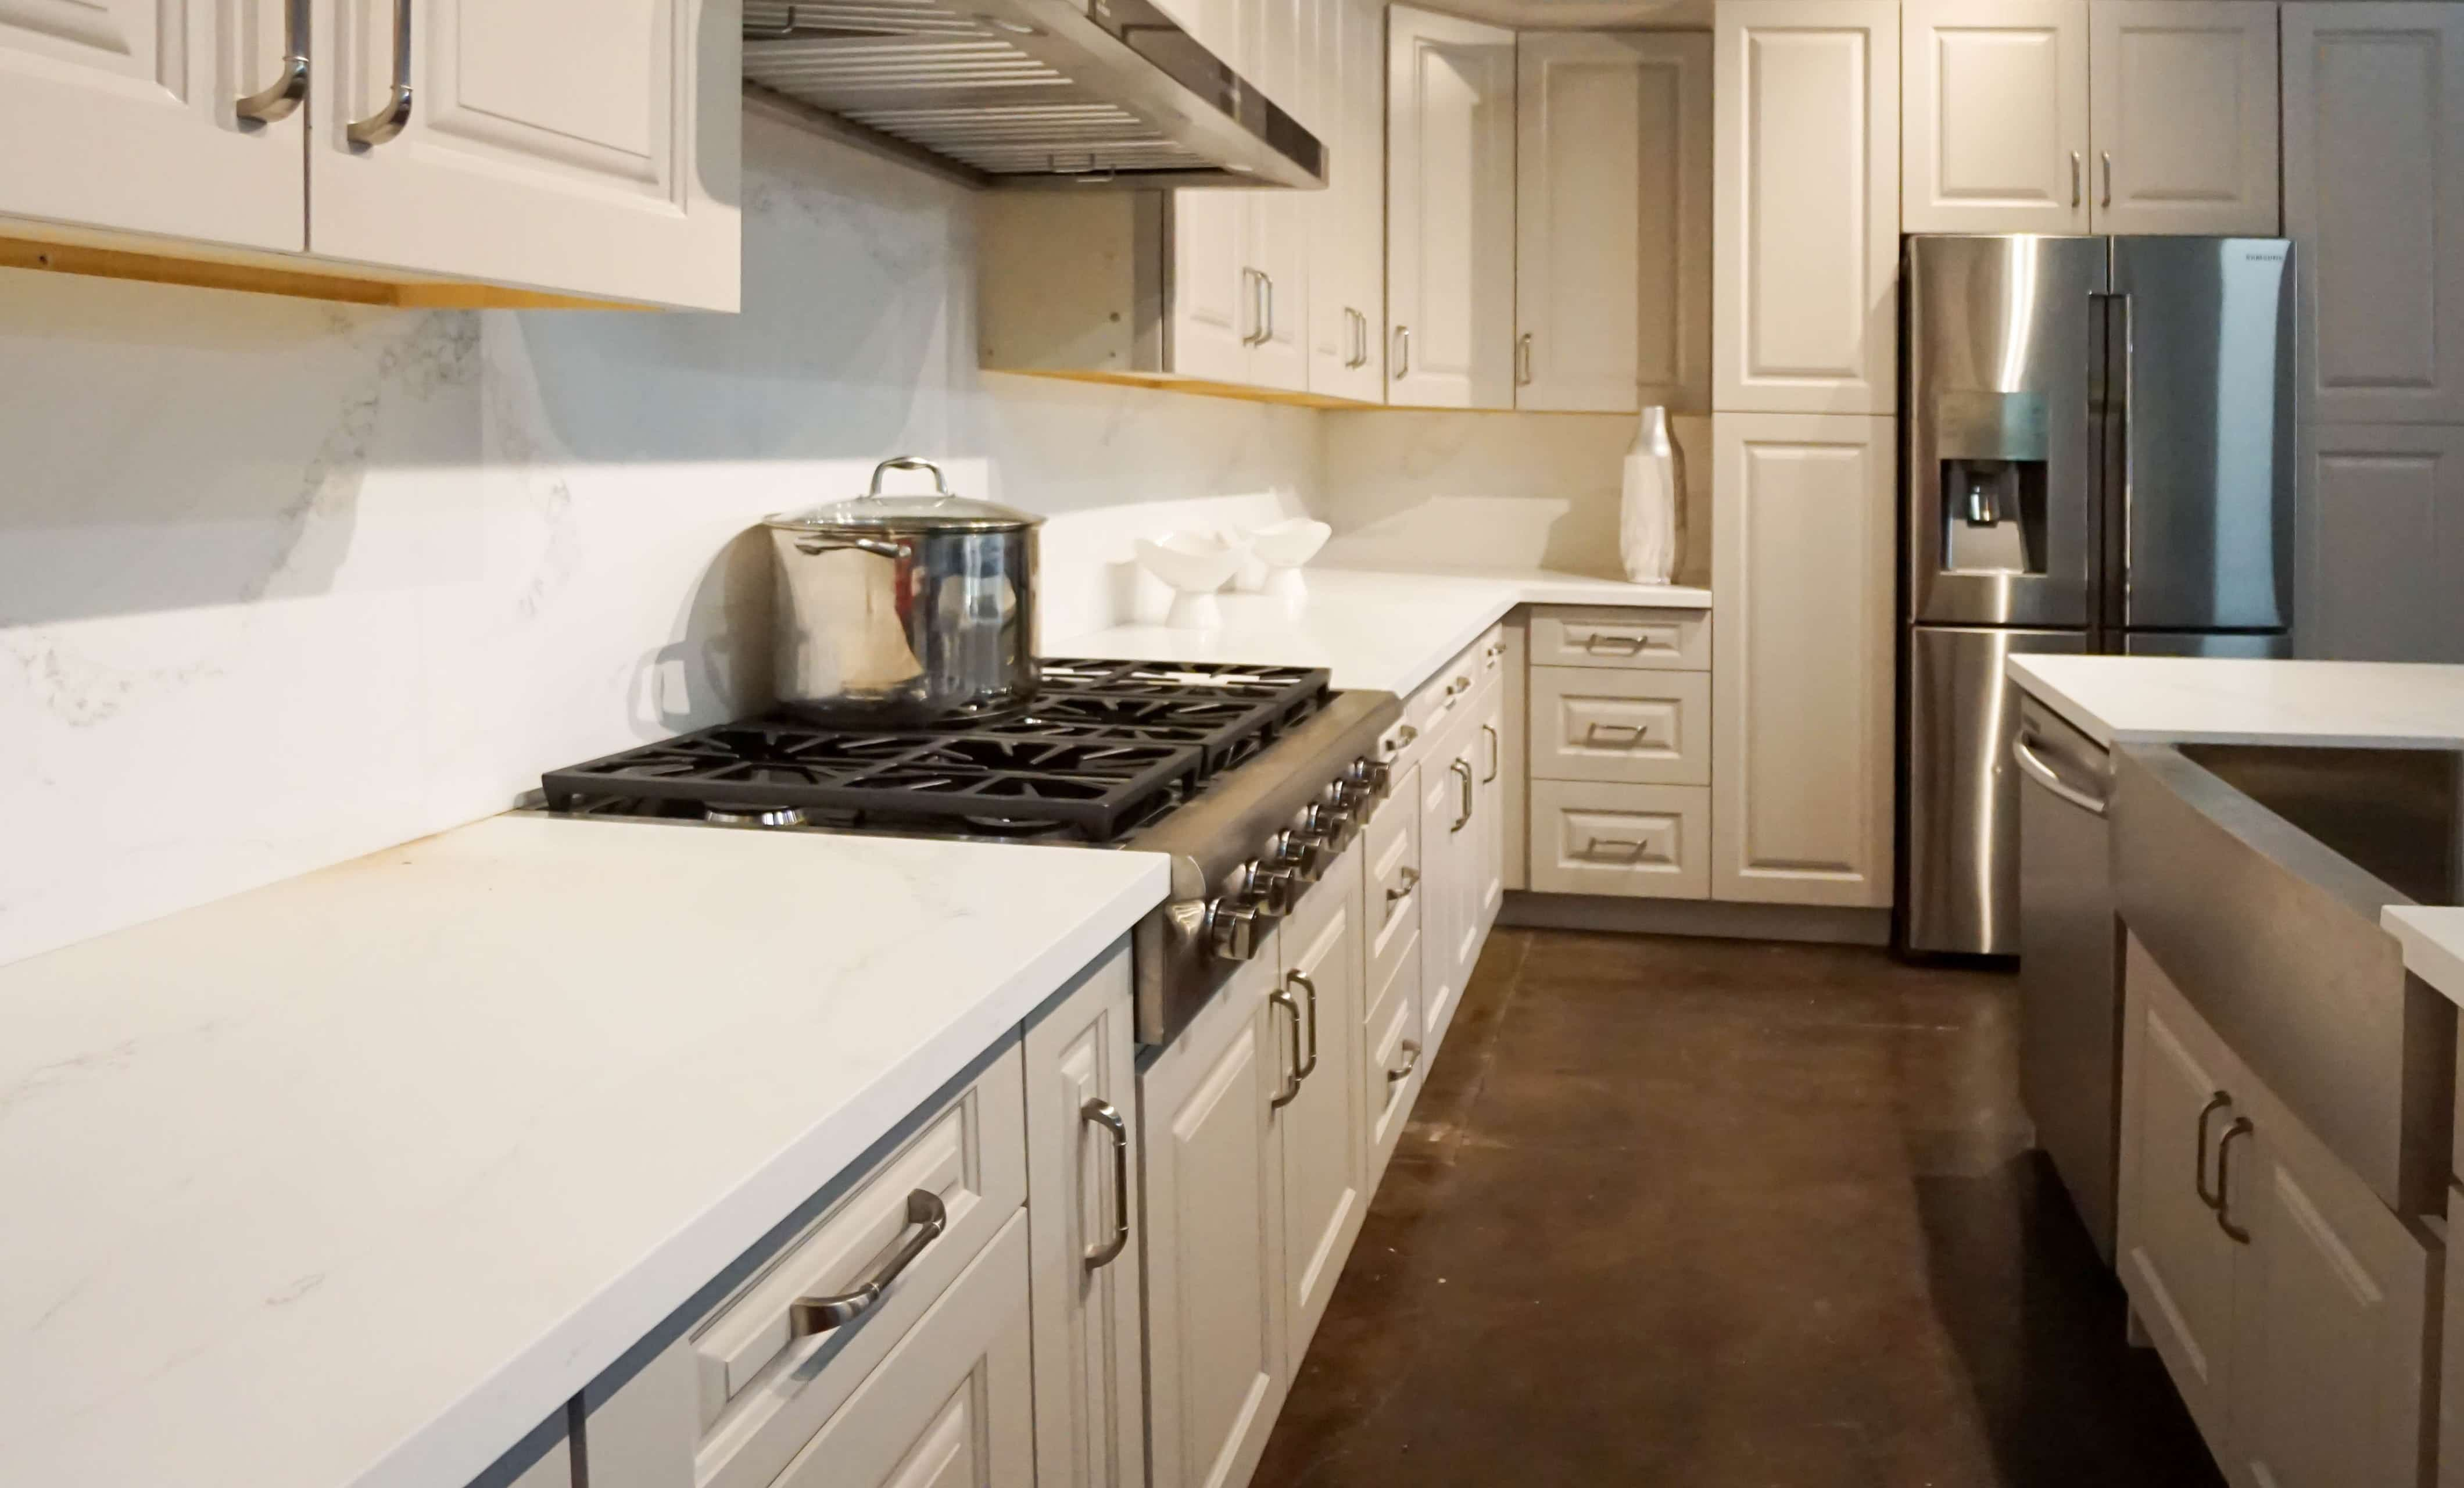 Kitchen Backsplash Ideas With White Cabinets Move Over White Taupe Kitchen Backsplash Ideas Are In Cabinet